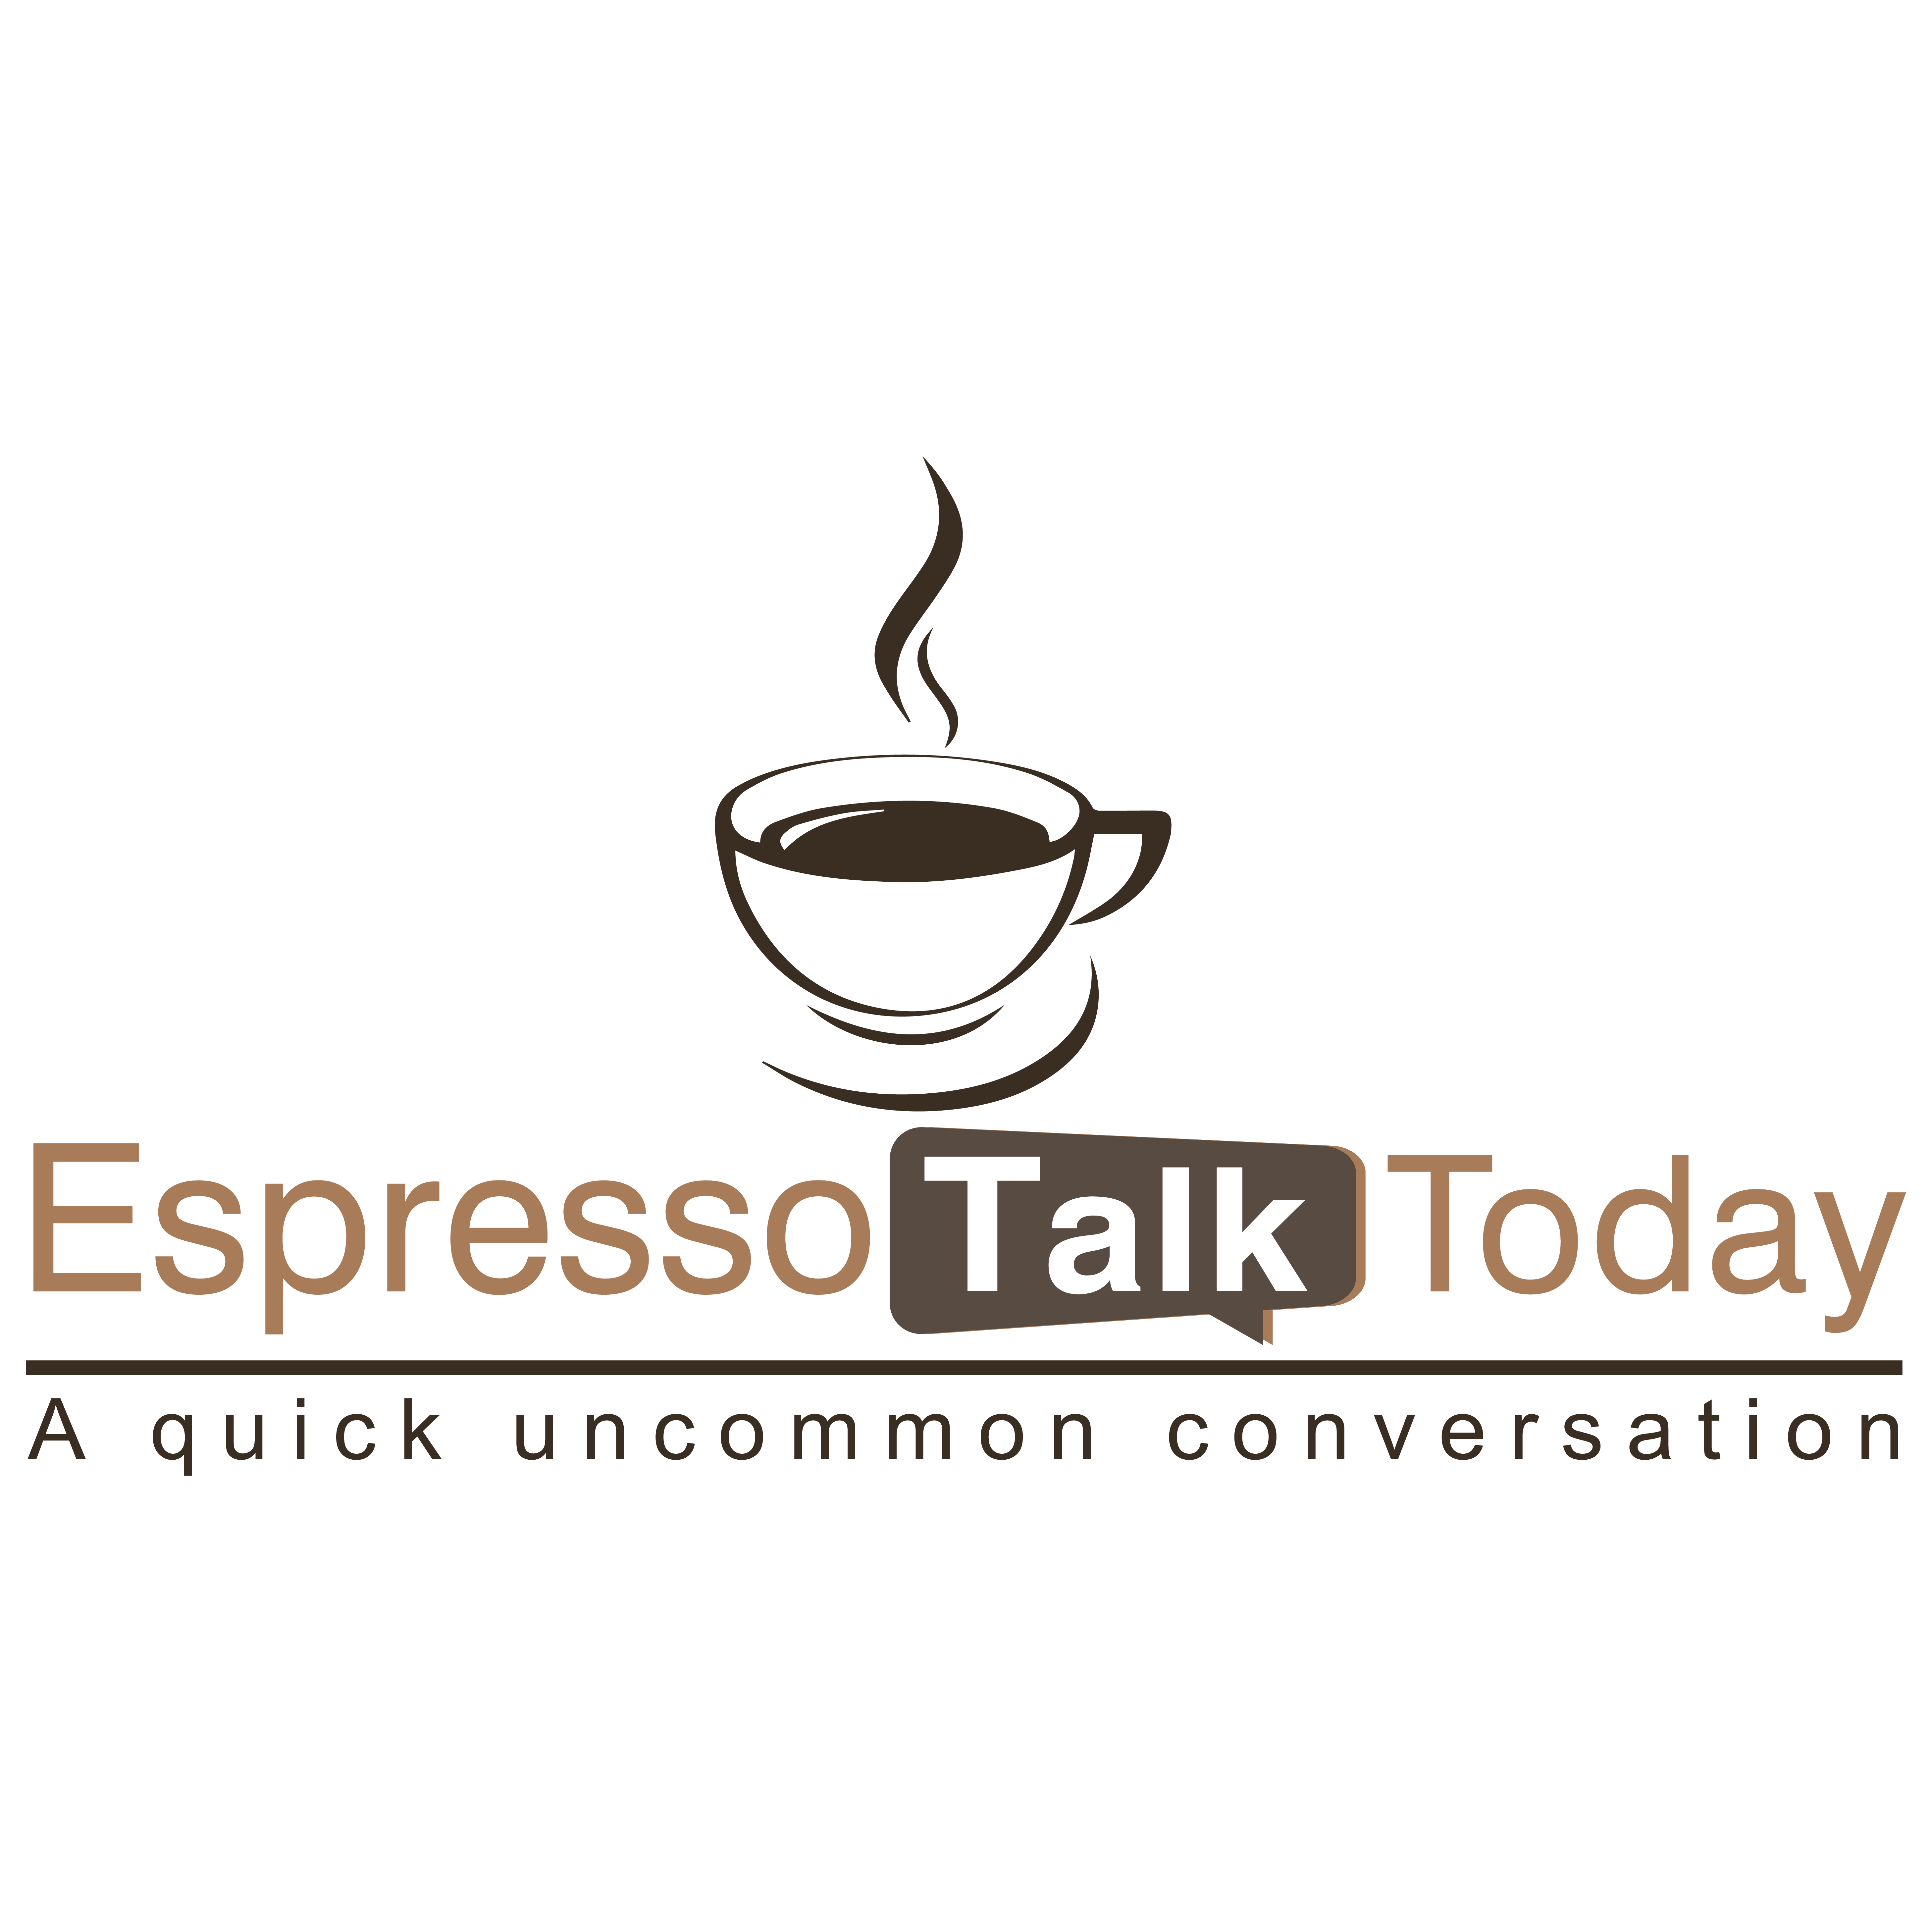 Espresso Talk Today album art